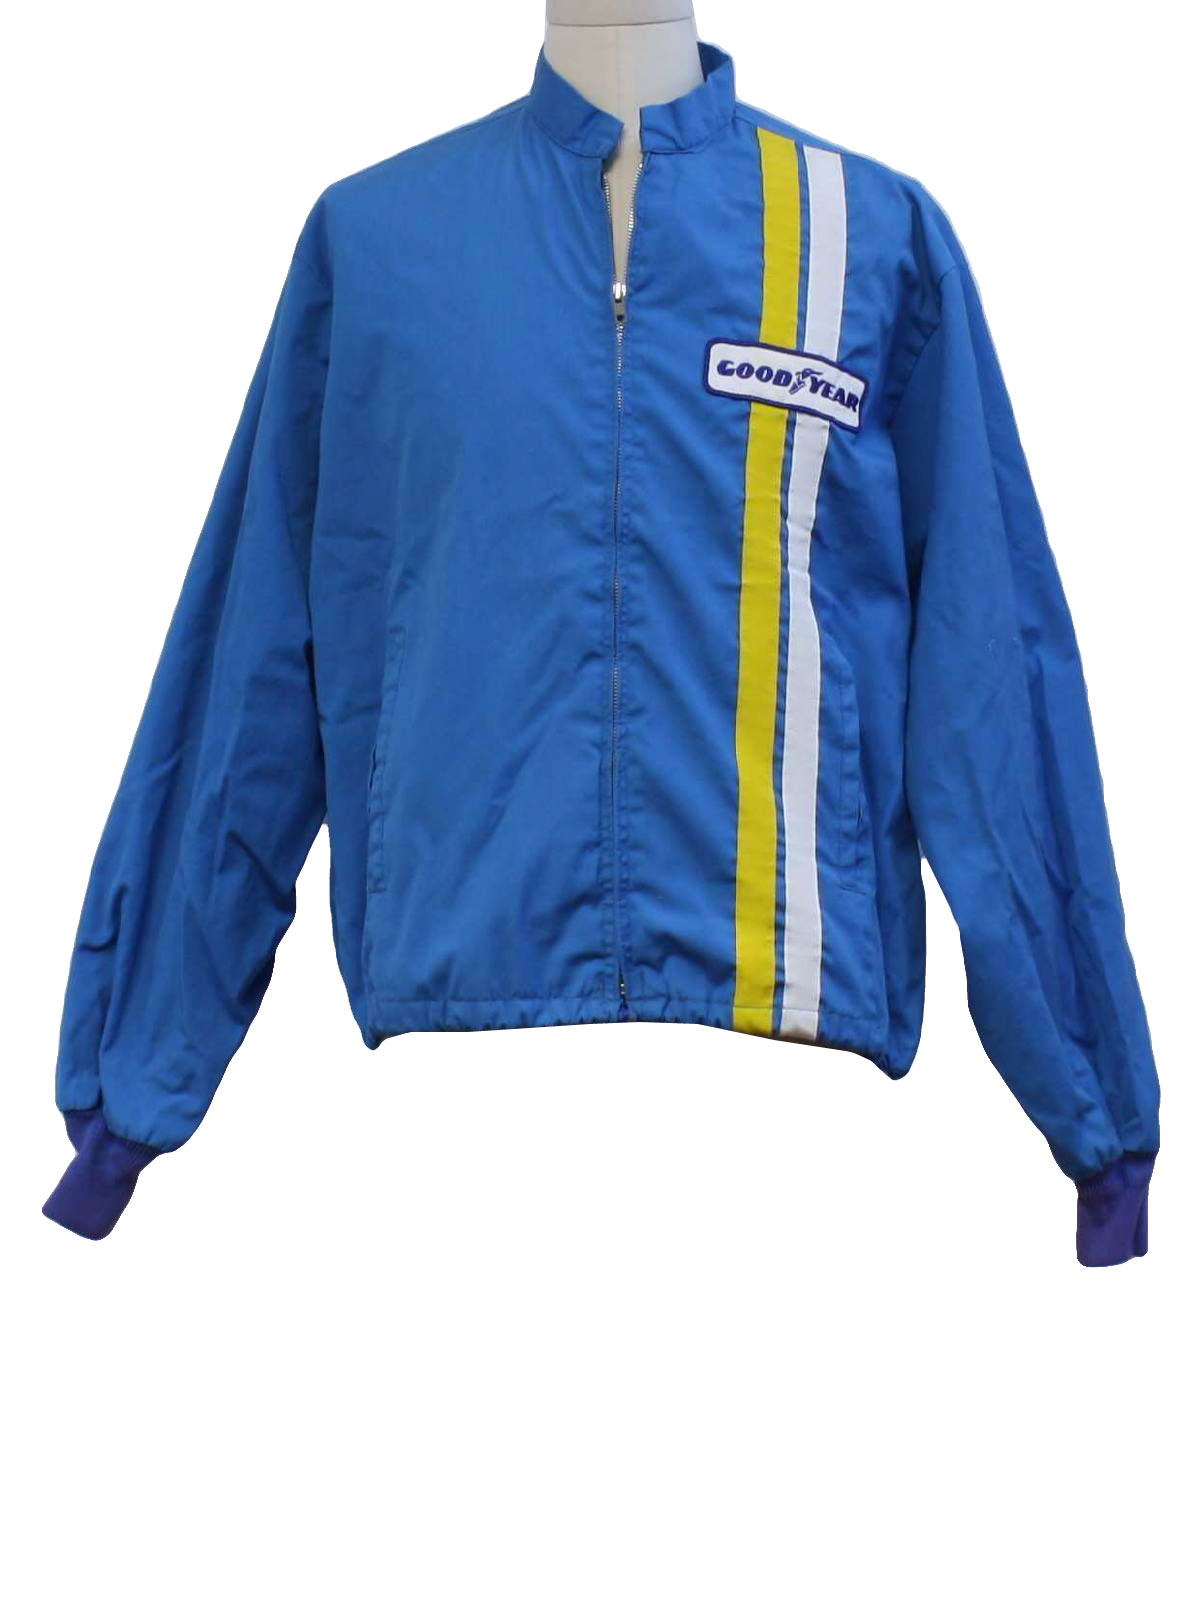 80s Clothing And Apparel Logos 80s -good year official racing